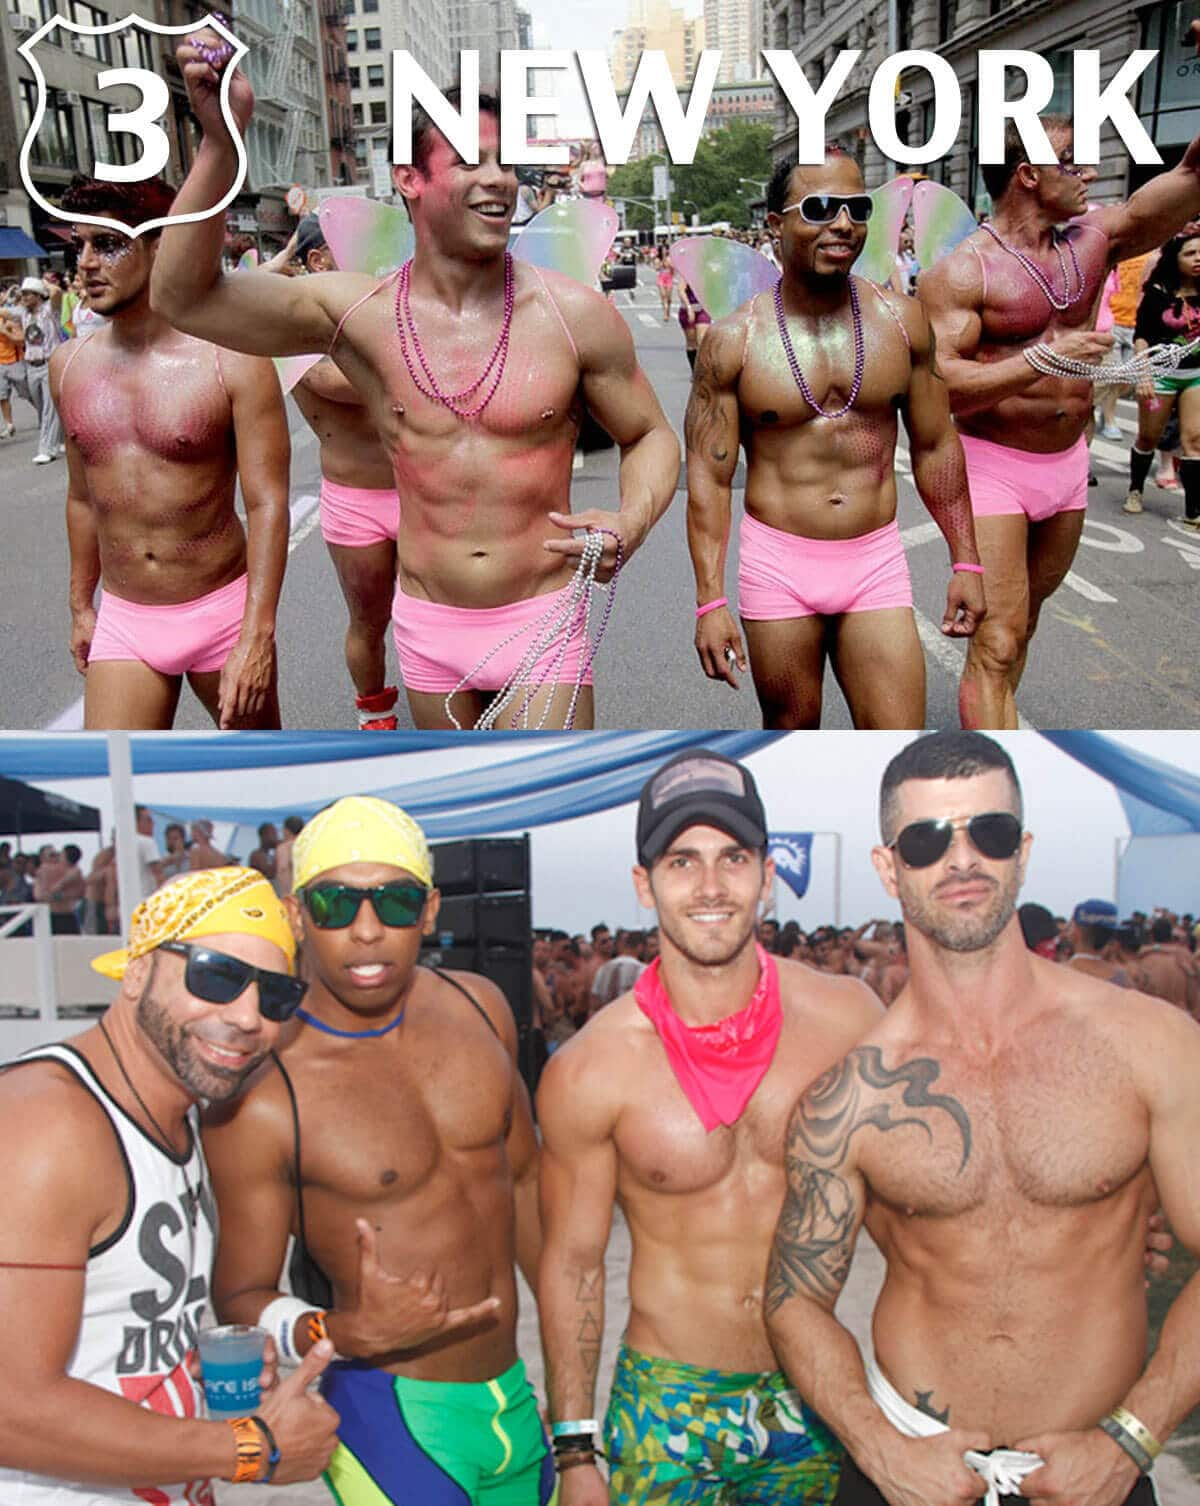 Top 10 Gay Destinations 2015 New York City NYC